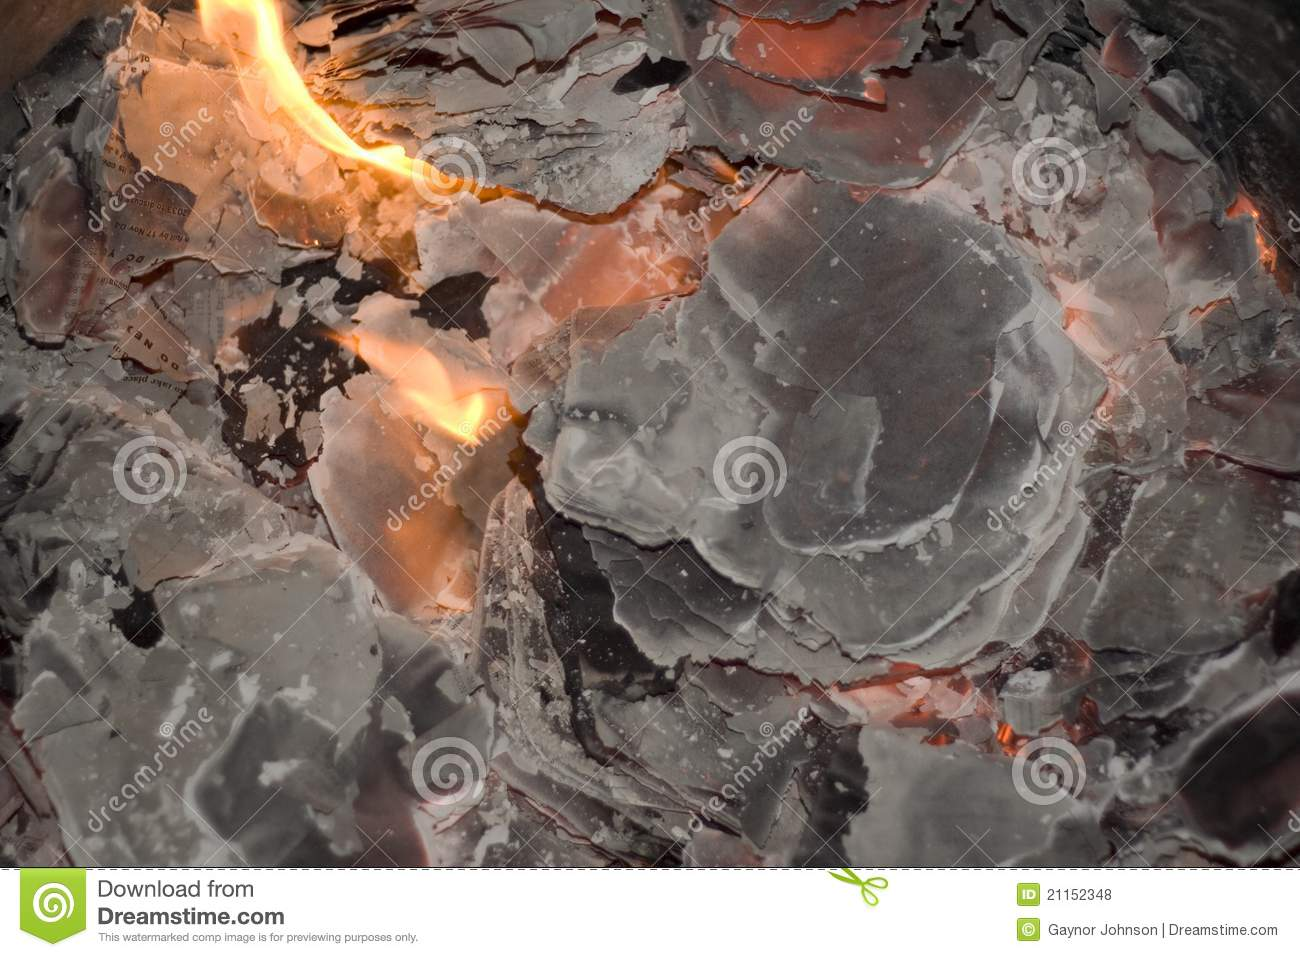 Fire burns paper to ash